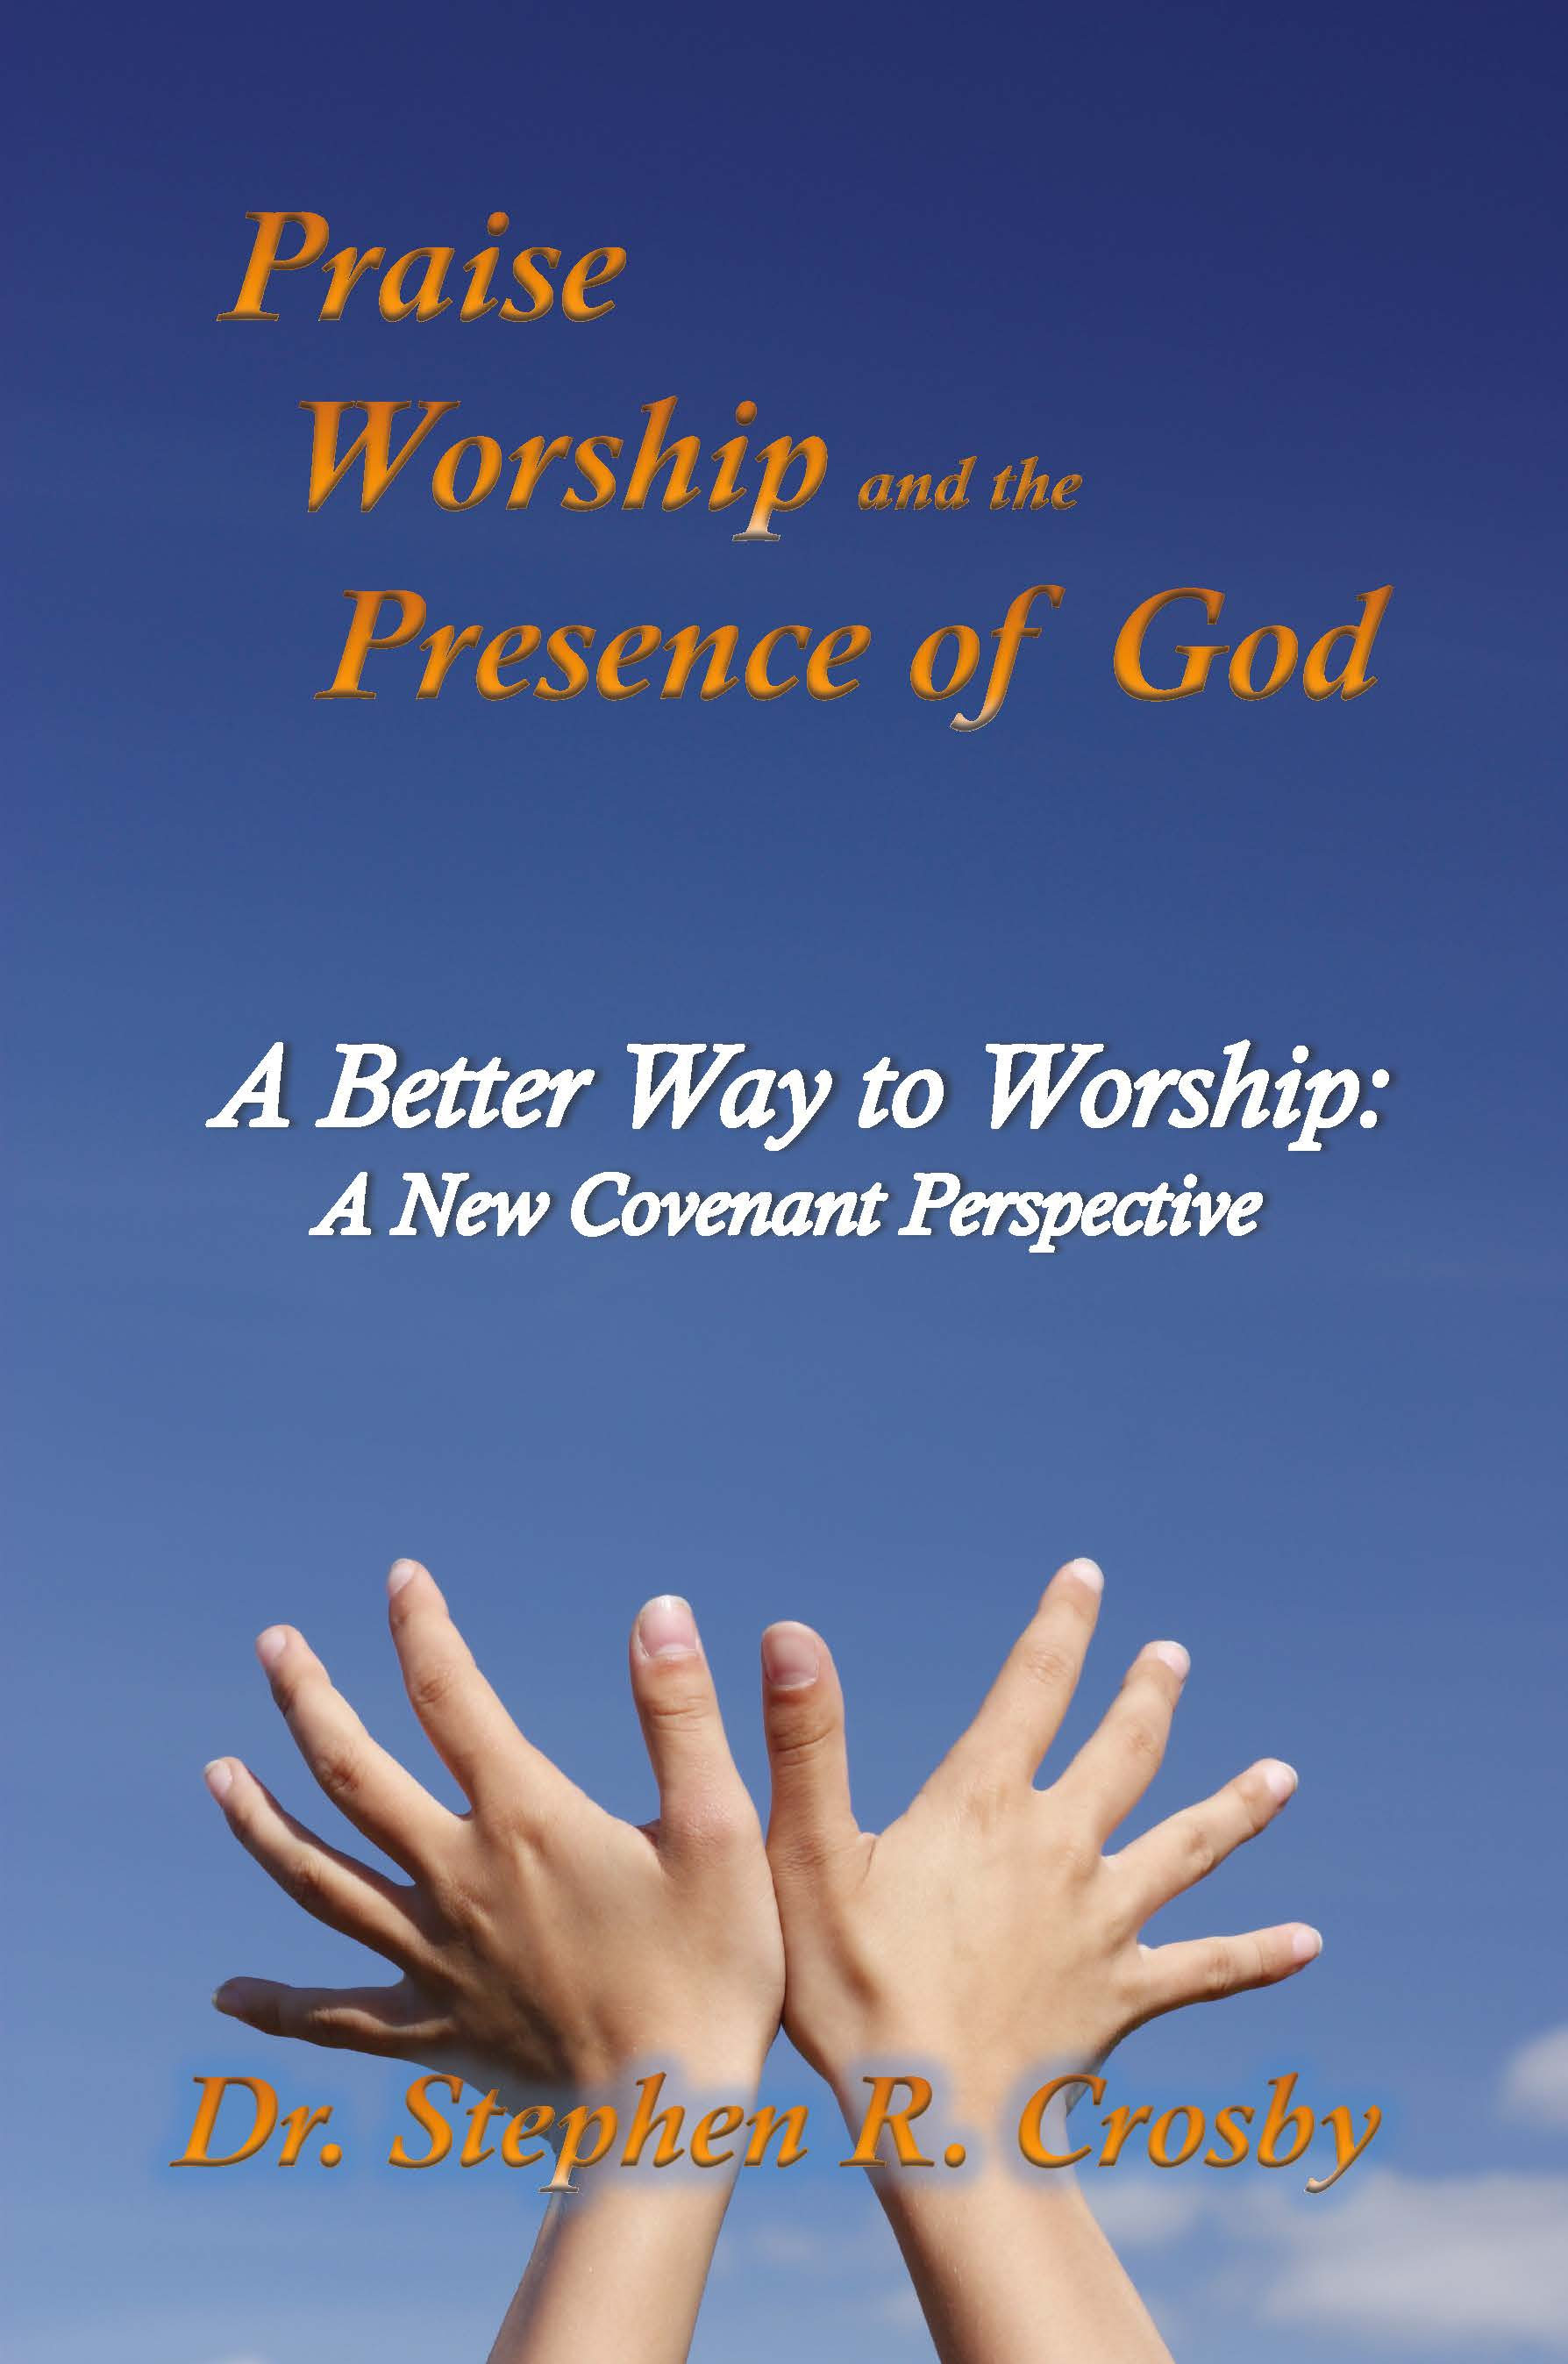 Praise and Worship: A New Covenant Perspective